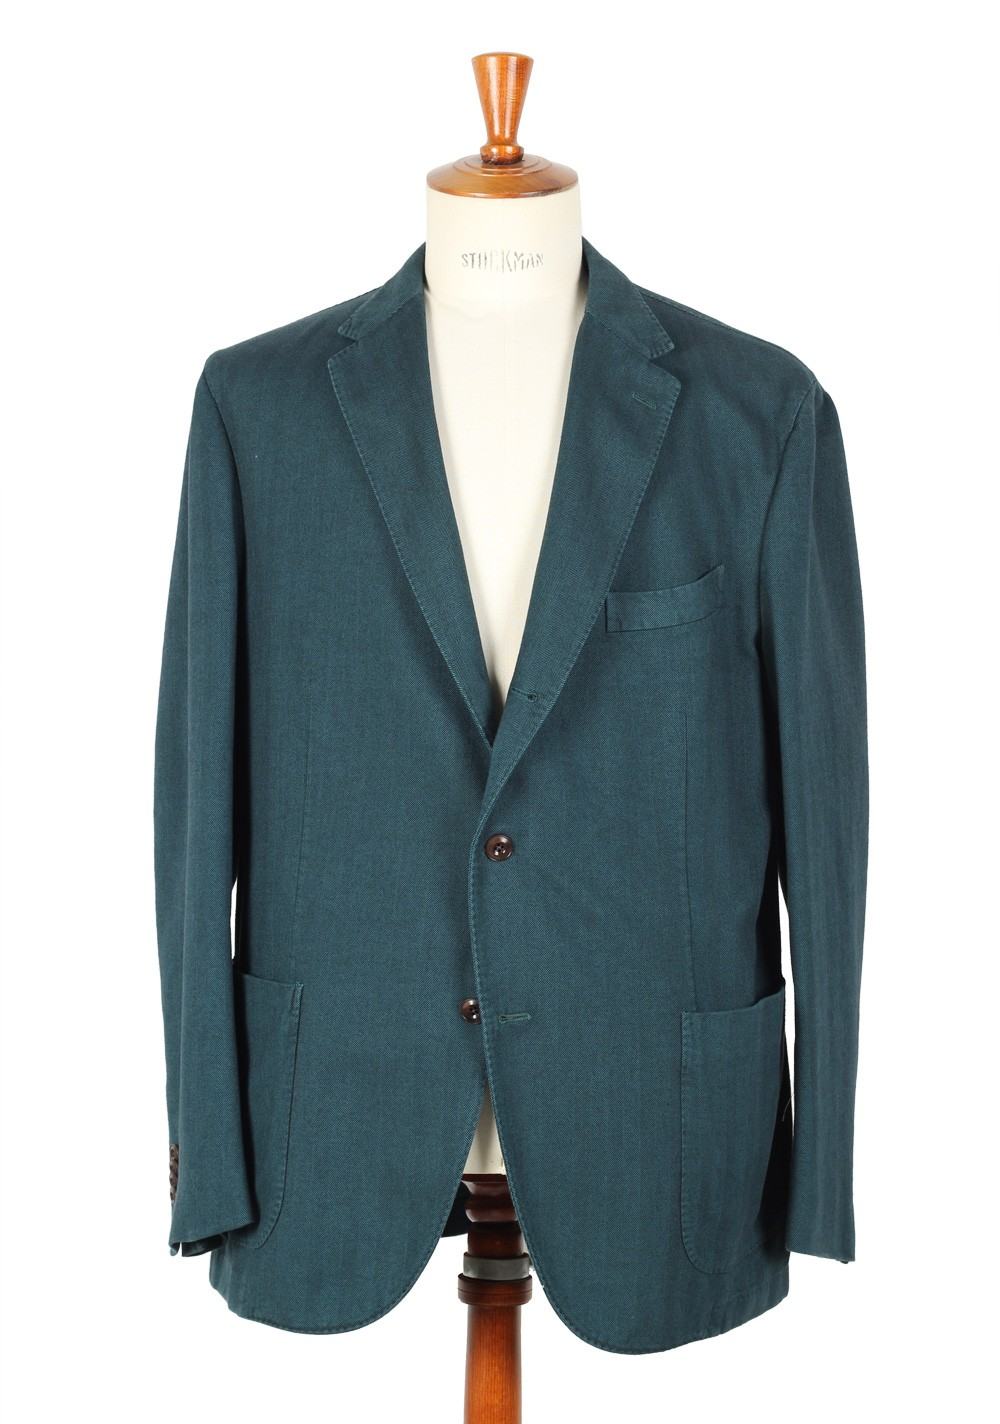 See all results for suit jacket mens size 50r. Salvatore Exte. Mens Suit Vested Three Piece Blazer Jacket Dress Vest Plus Pants. from $ 89 99 Prime. out of 5 stars Hanayome. Men's 3 PC Casual Stylish Suit Blazer Jacket Tux Vest & Trousers. from $ 69 90 Prime. out of 5 stars